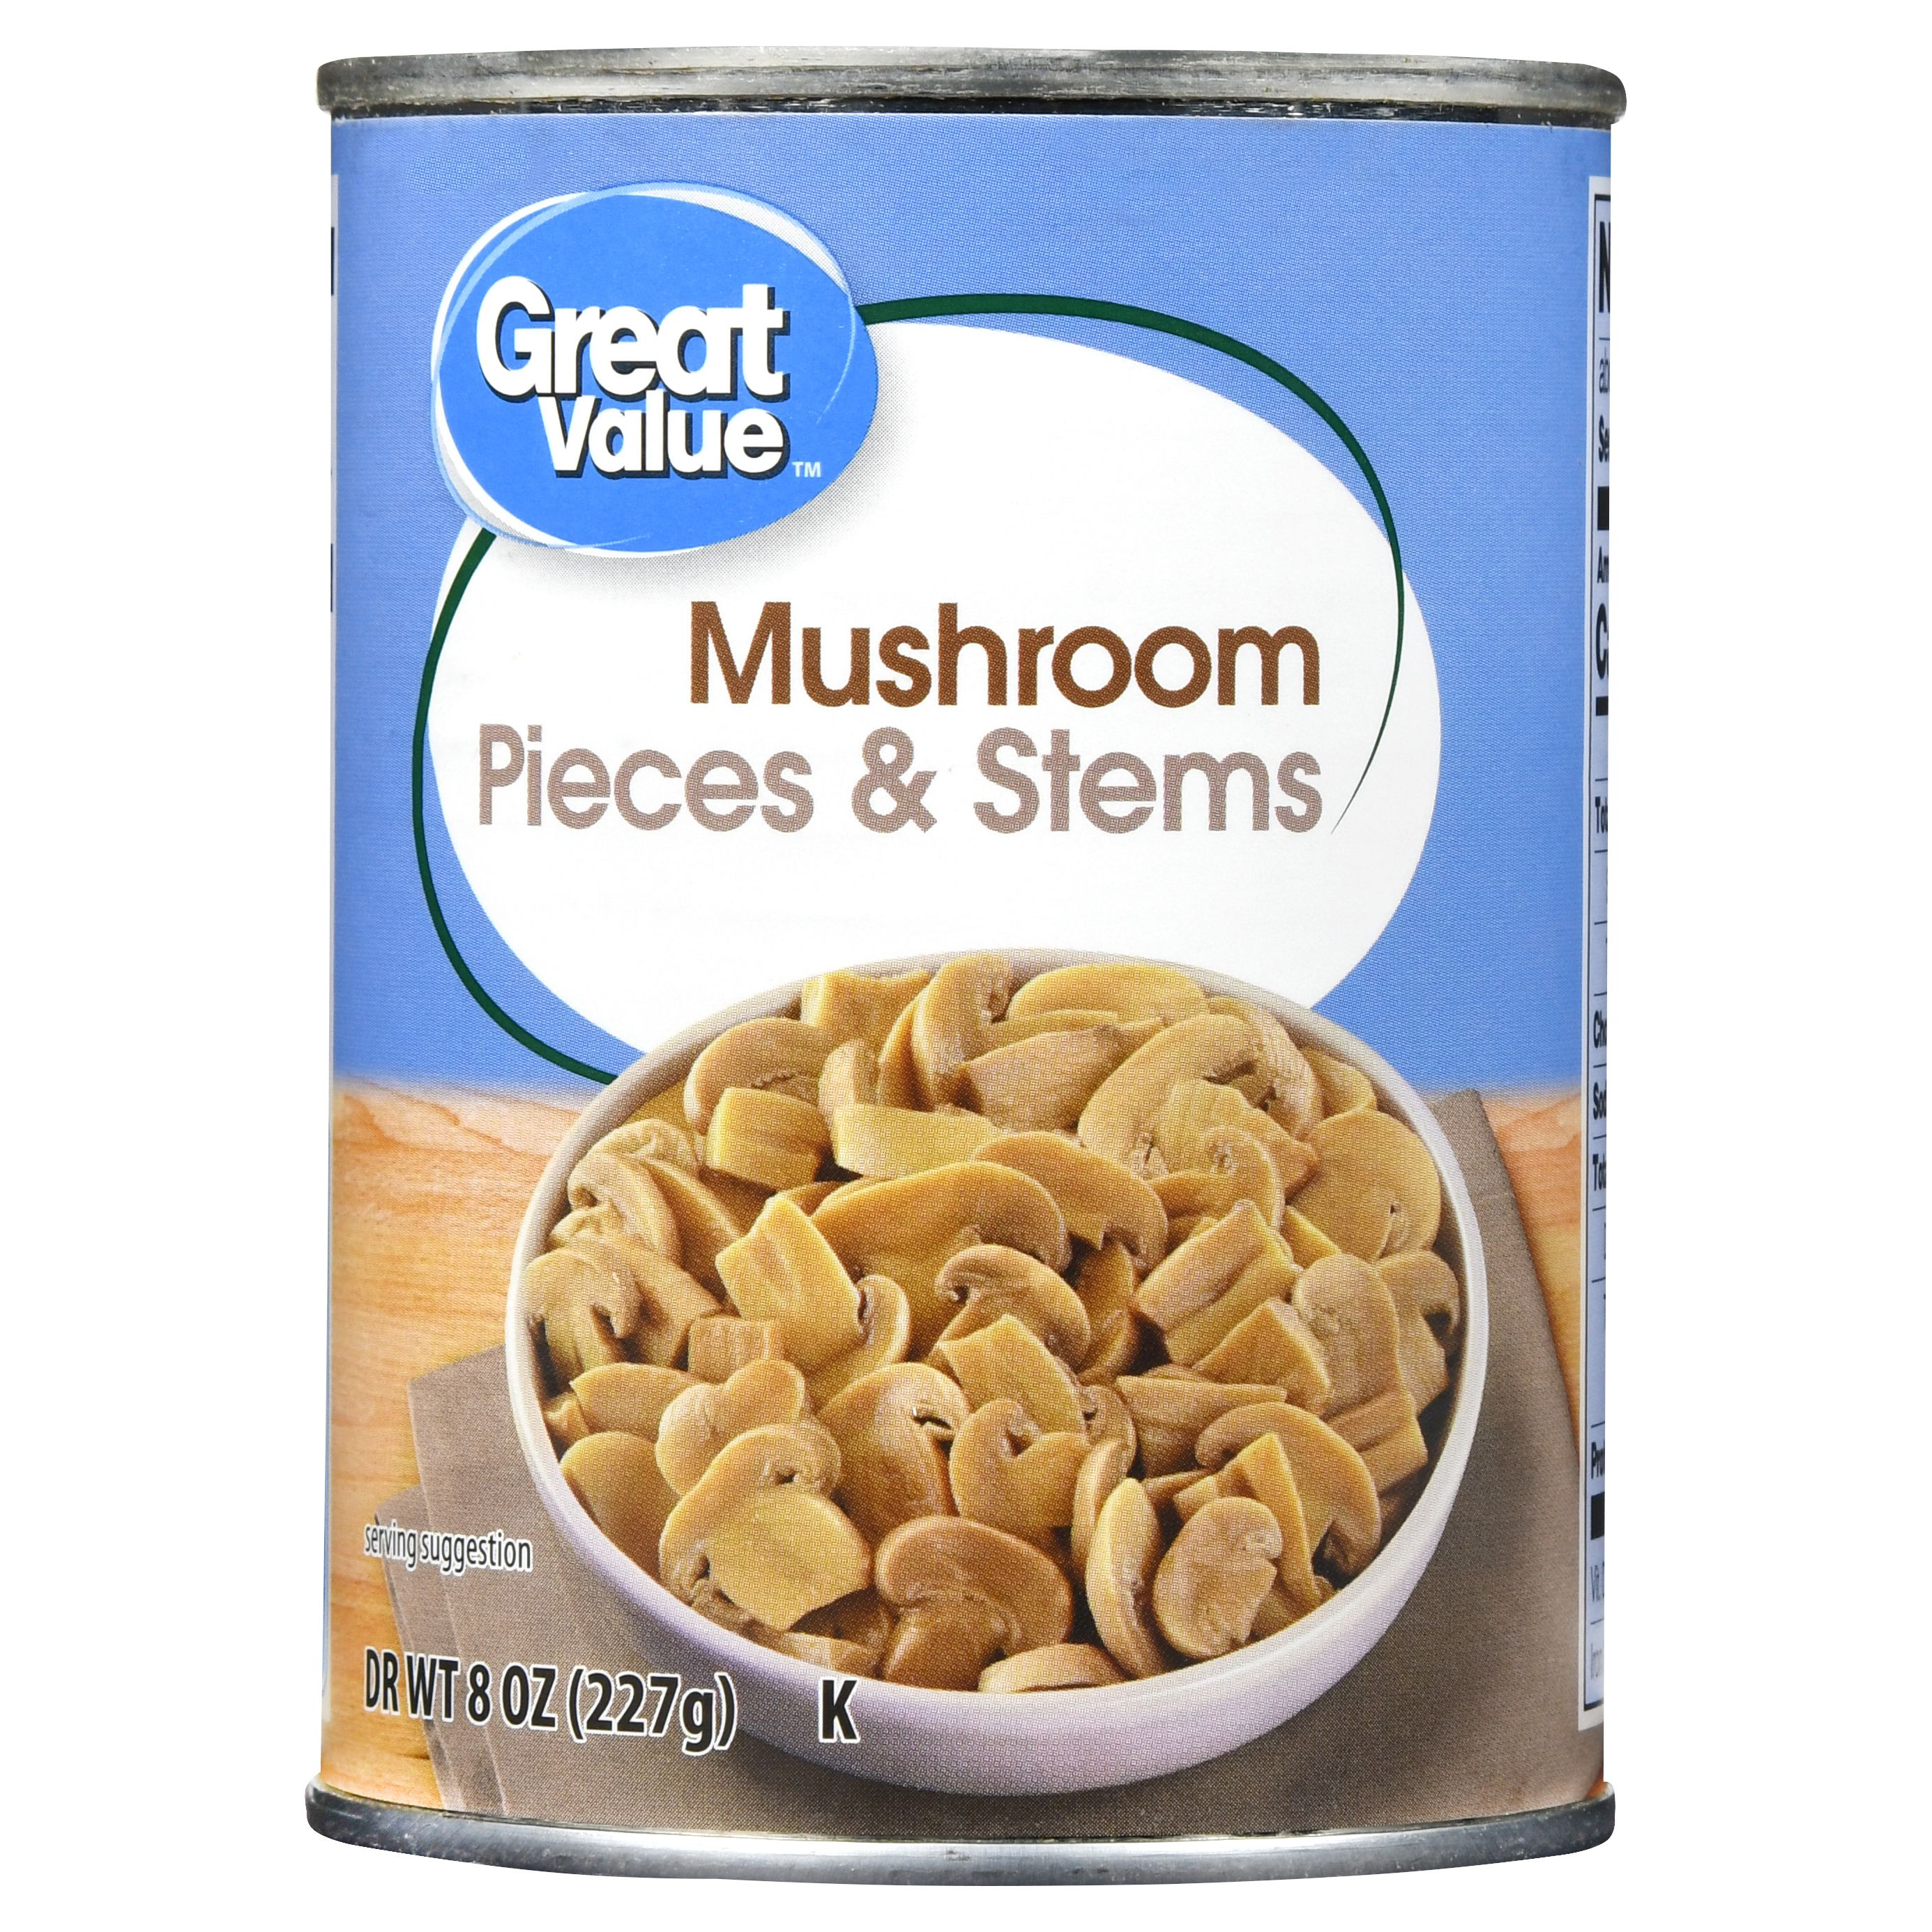 Great Value Mushroom Pieces & Stems, 8 Oz